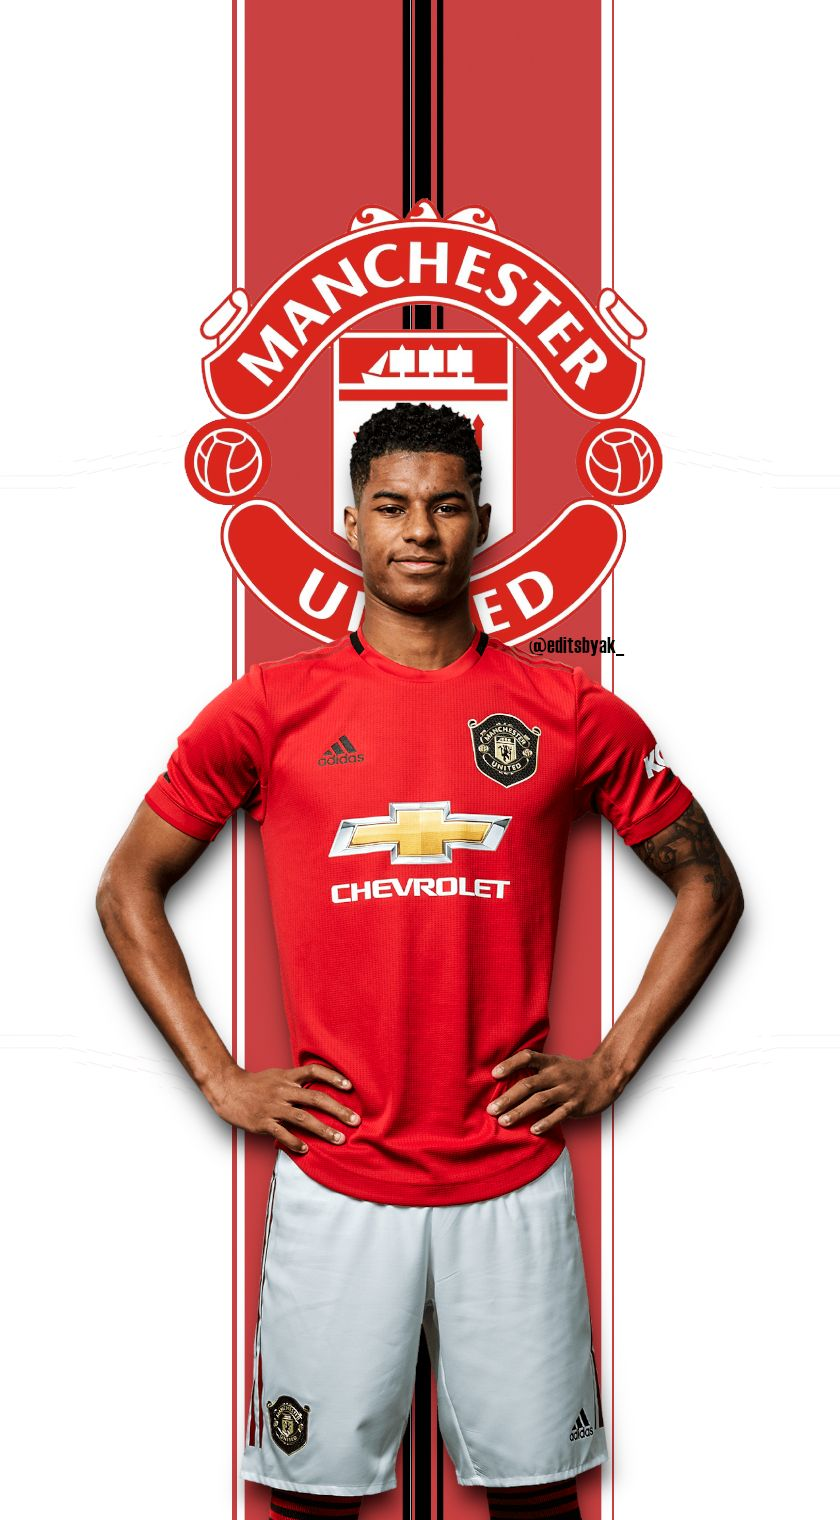 Marcus Rashford Manchester United Football Mobile Wallpaper Manchester United Football Marcus Rashford Football Wallpaper